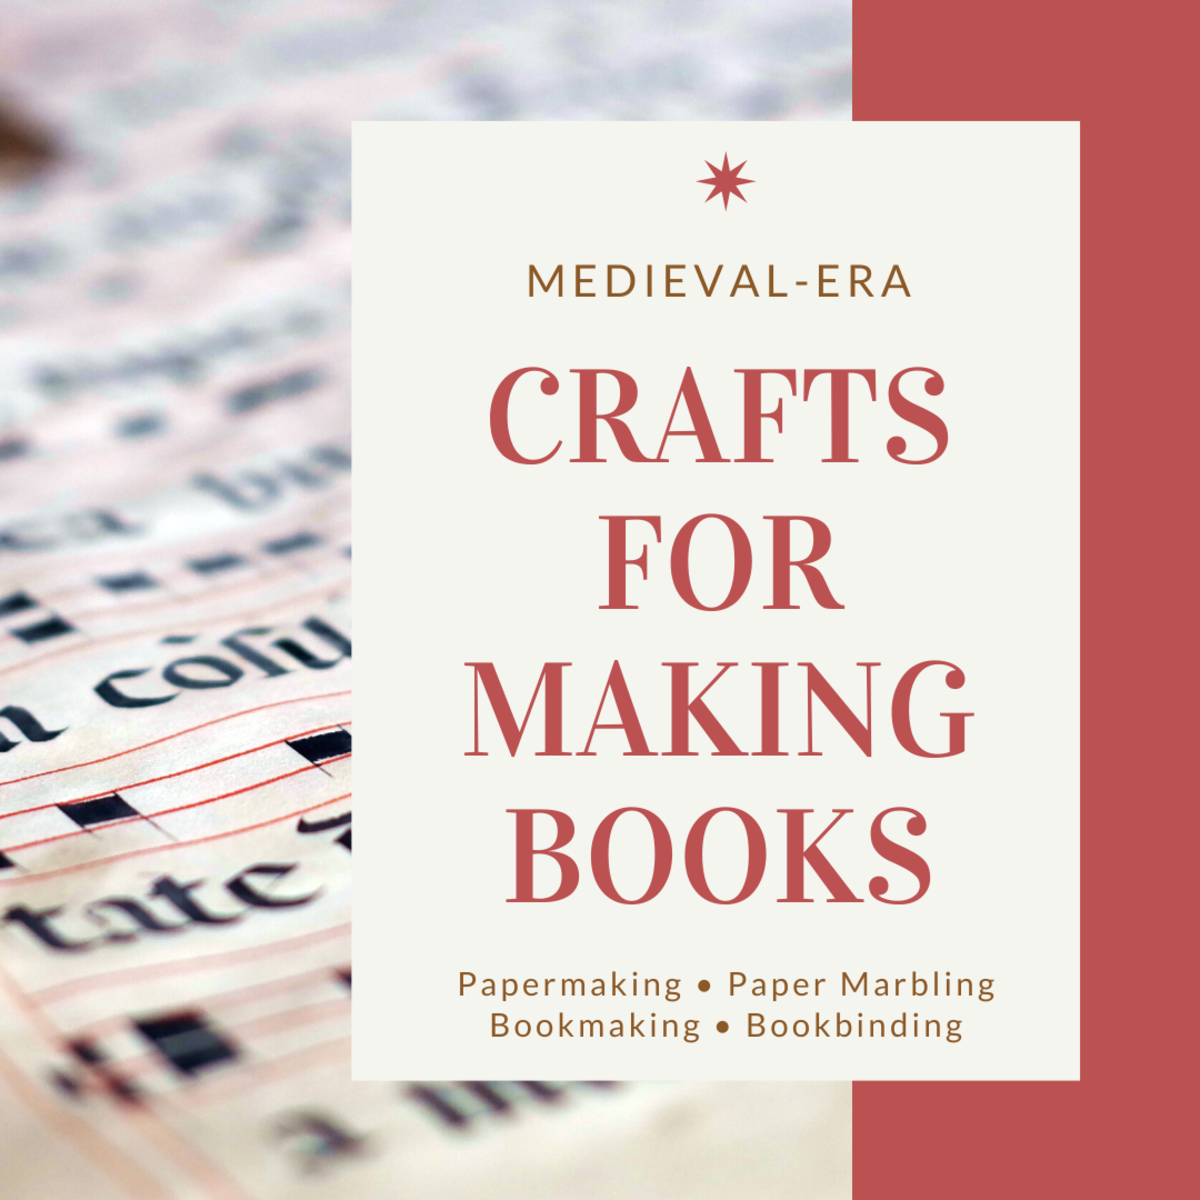 All of these crafts were used for making books in the Middle Ages.